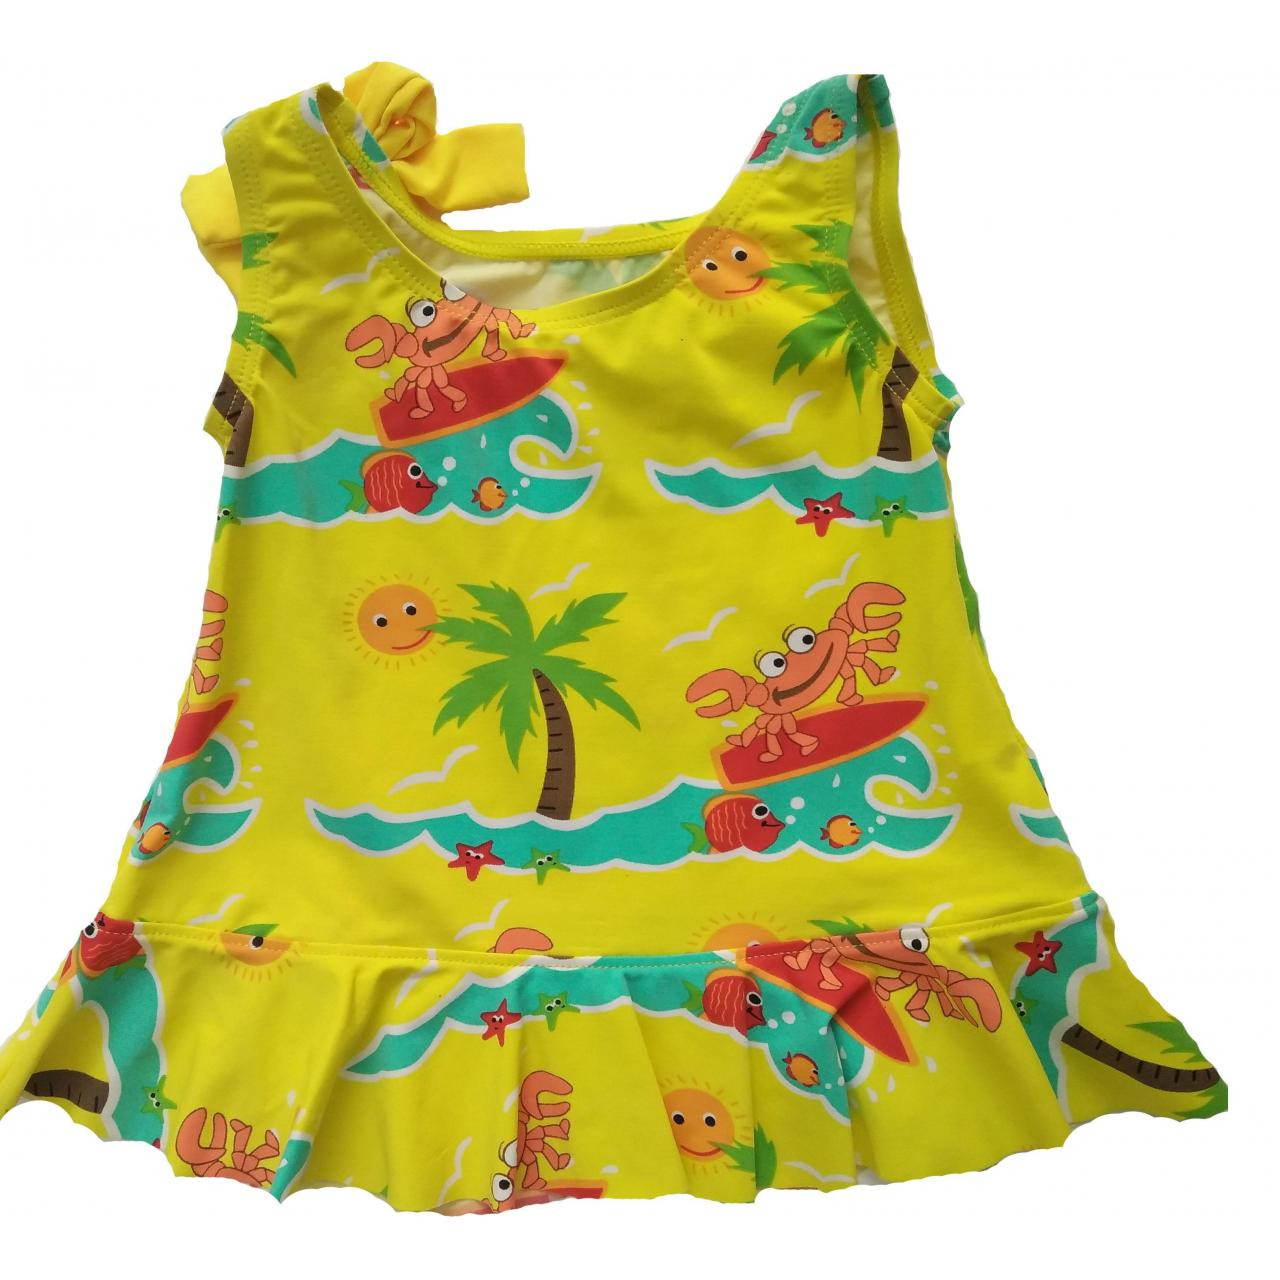 Quality KIDS SWIMSUITS palm print skirt shape one piece for sale